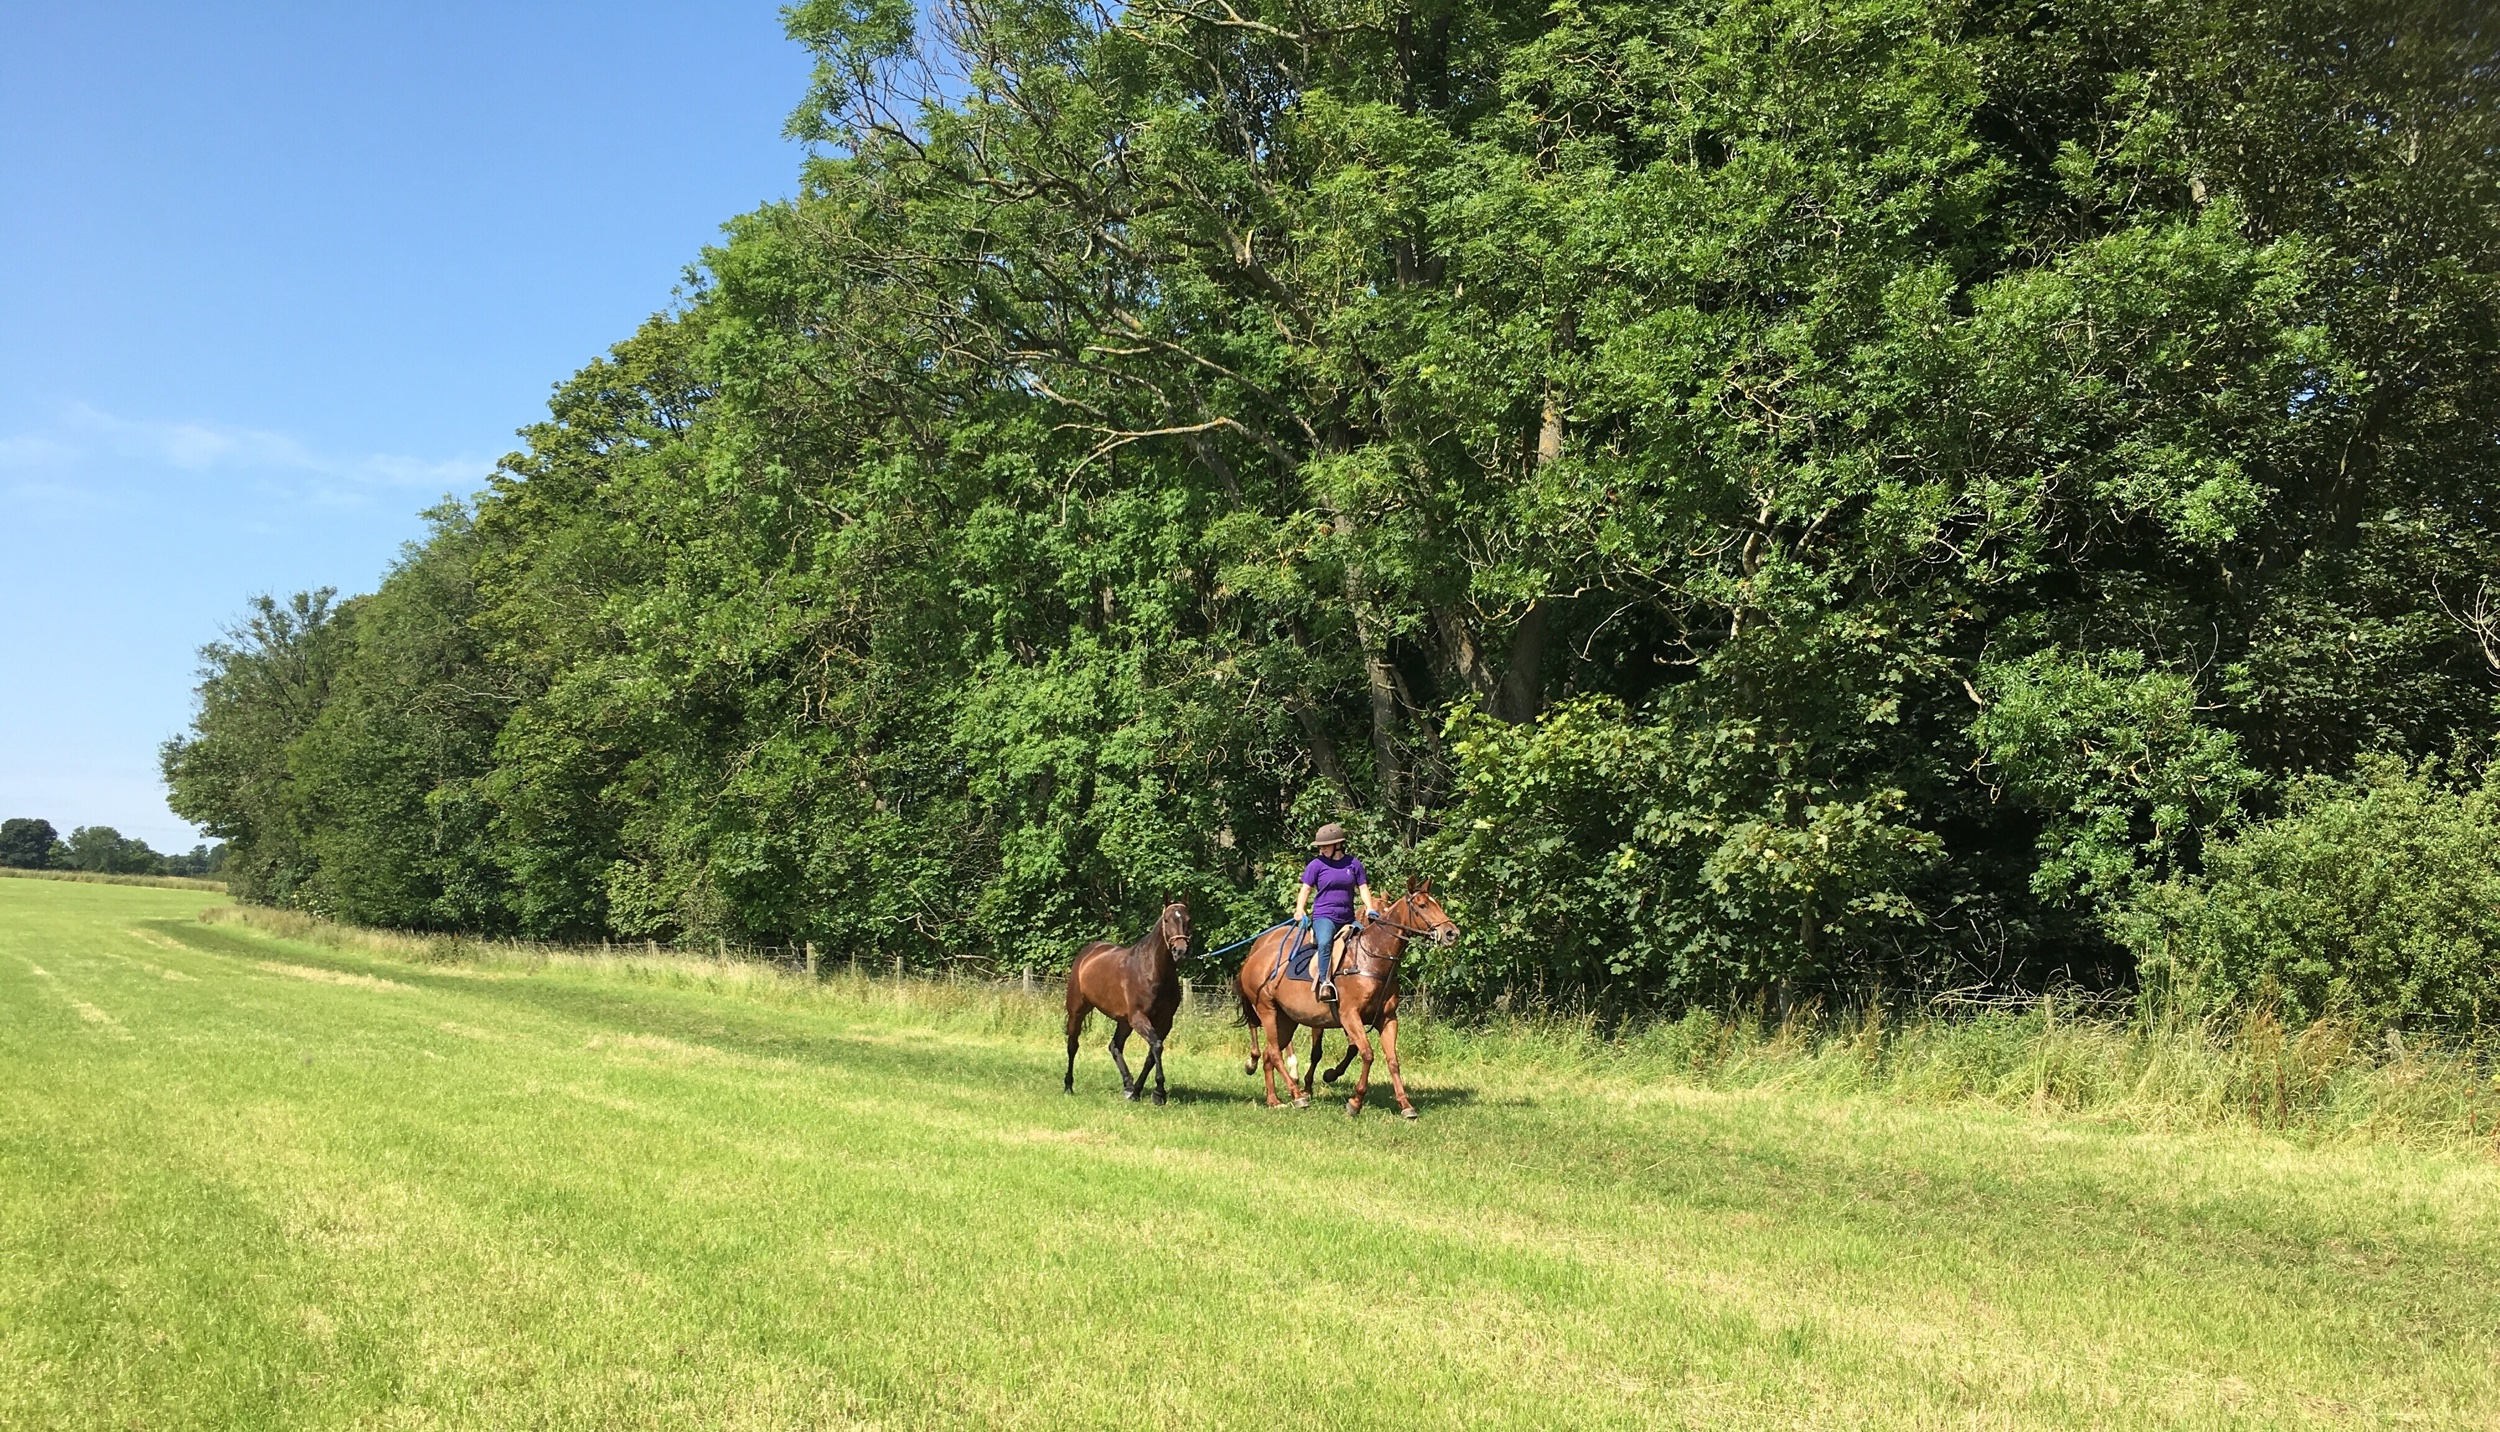 One mile gallop to keep horses fit